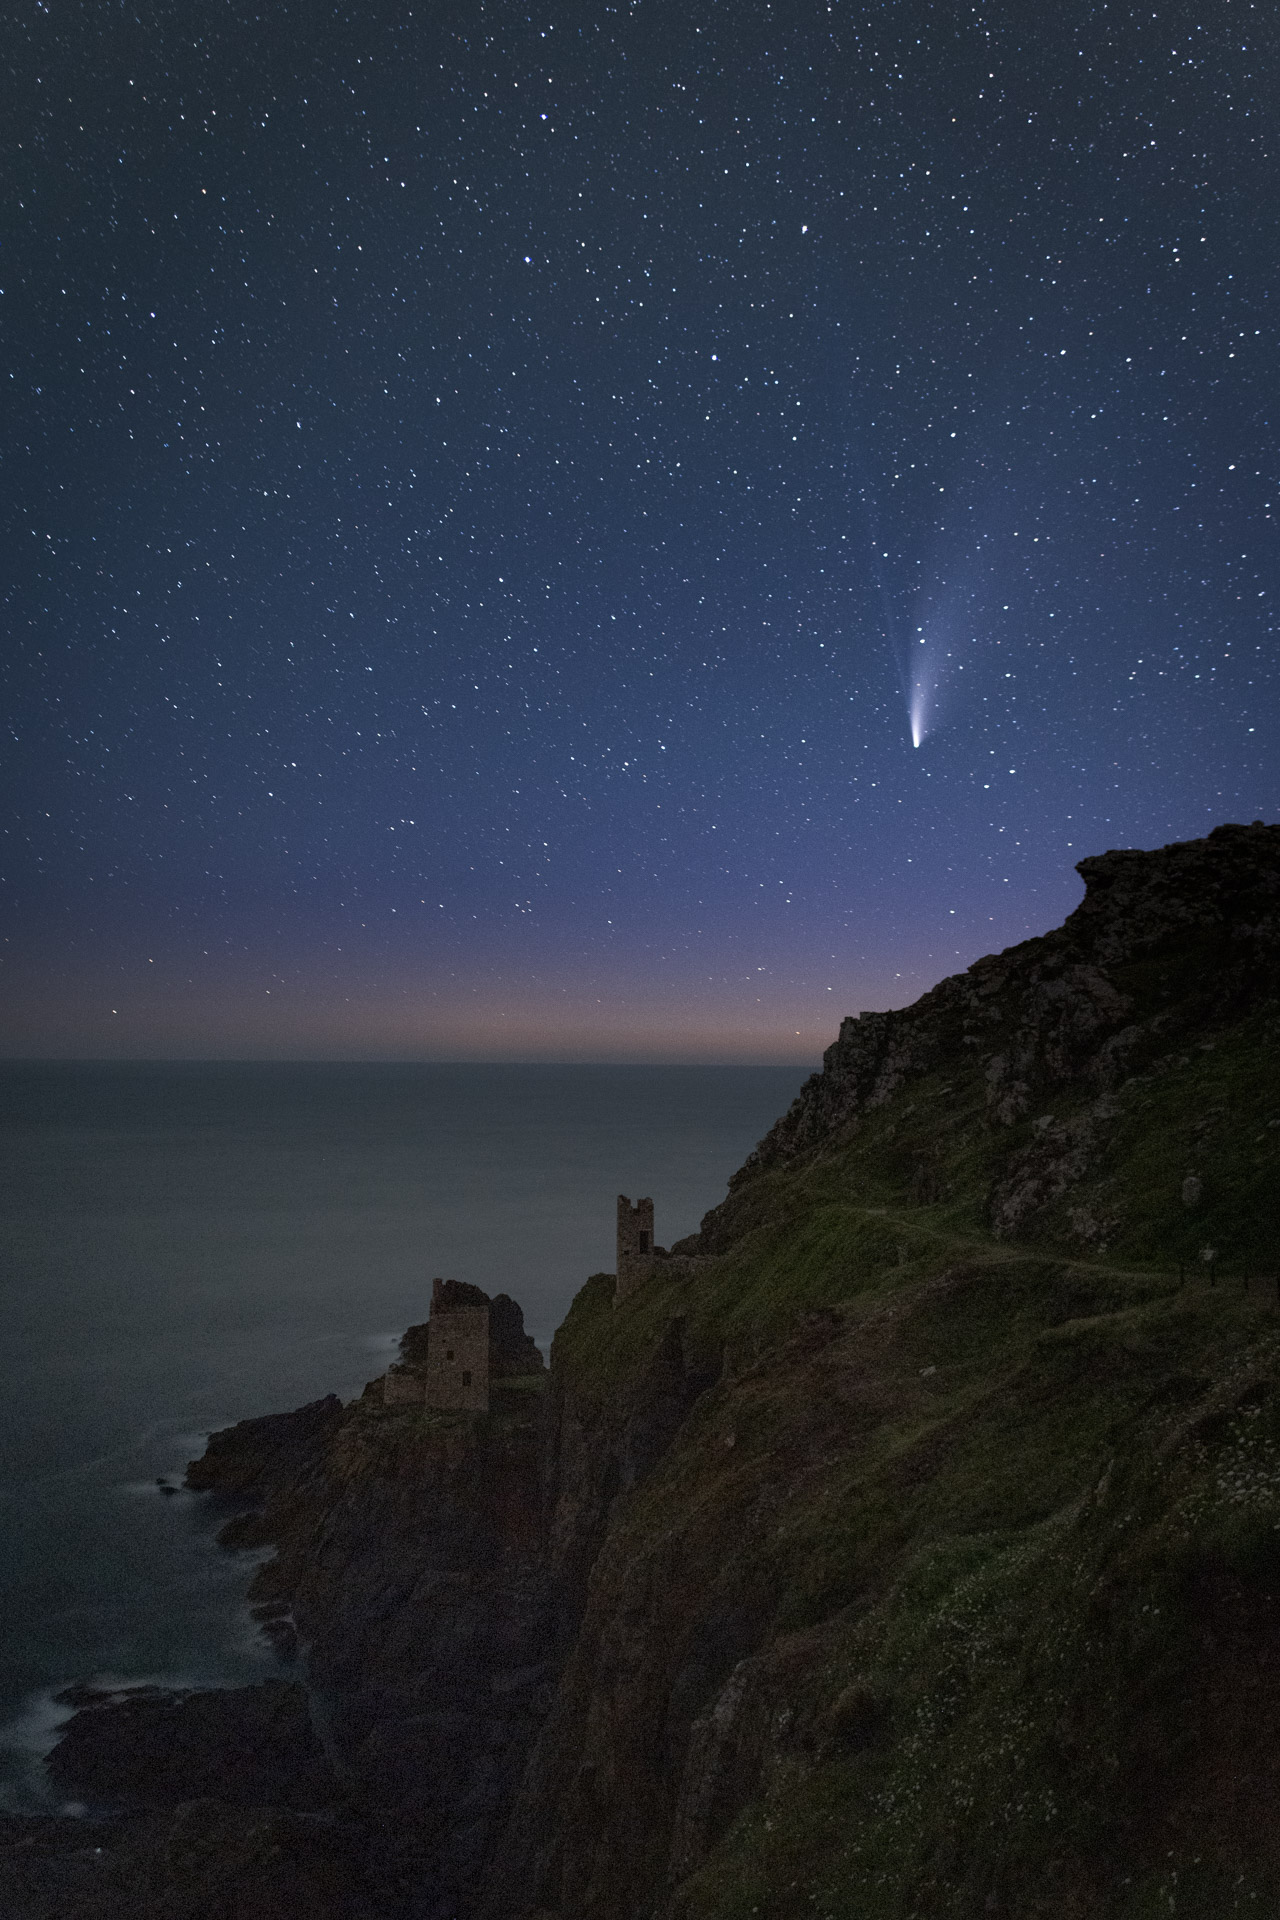 Botallack with Neowise Comet by Chris Colyer